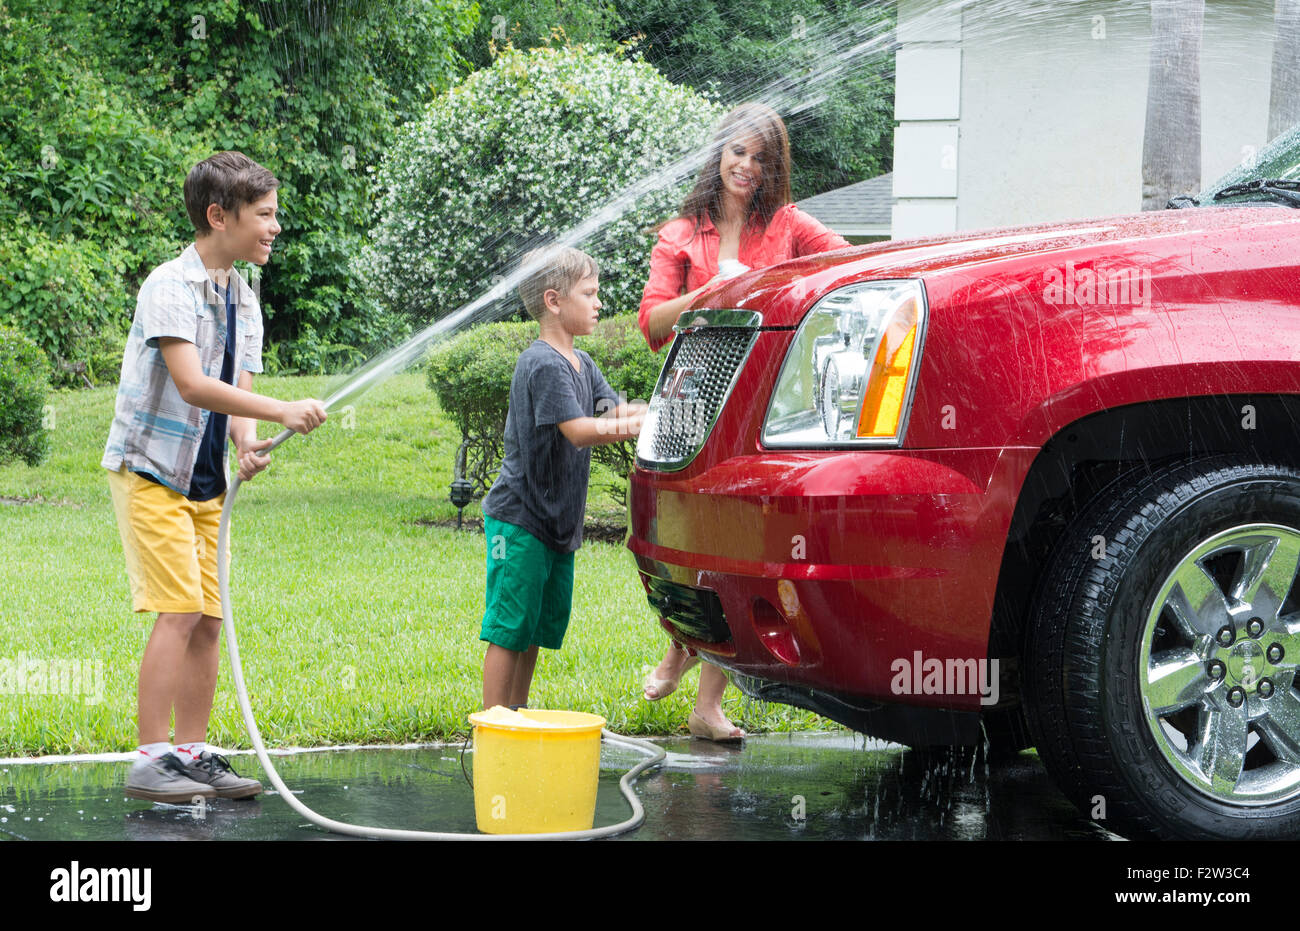 Single mother washing car at home with her two children in driveway with hose MR-11, MR-12, MR-13 Model Released - Stock Image